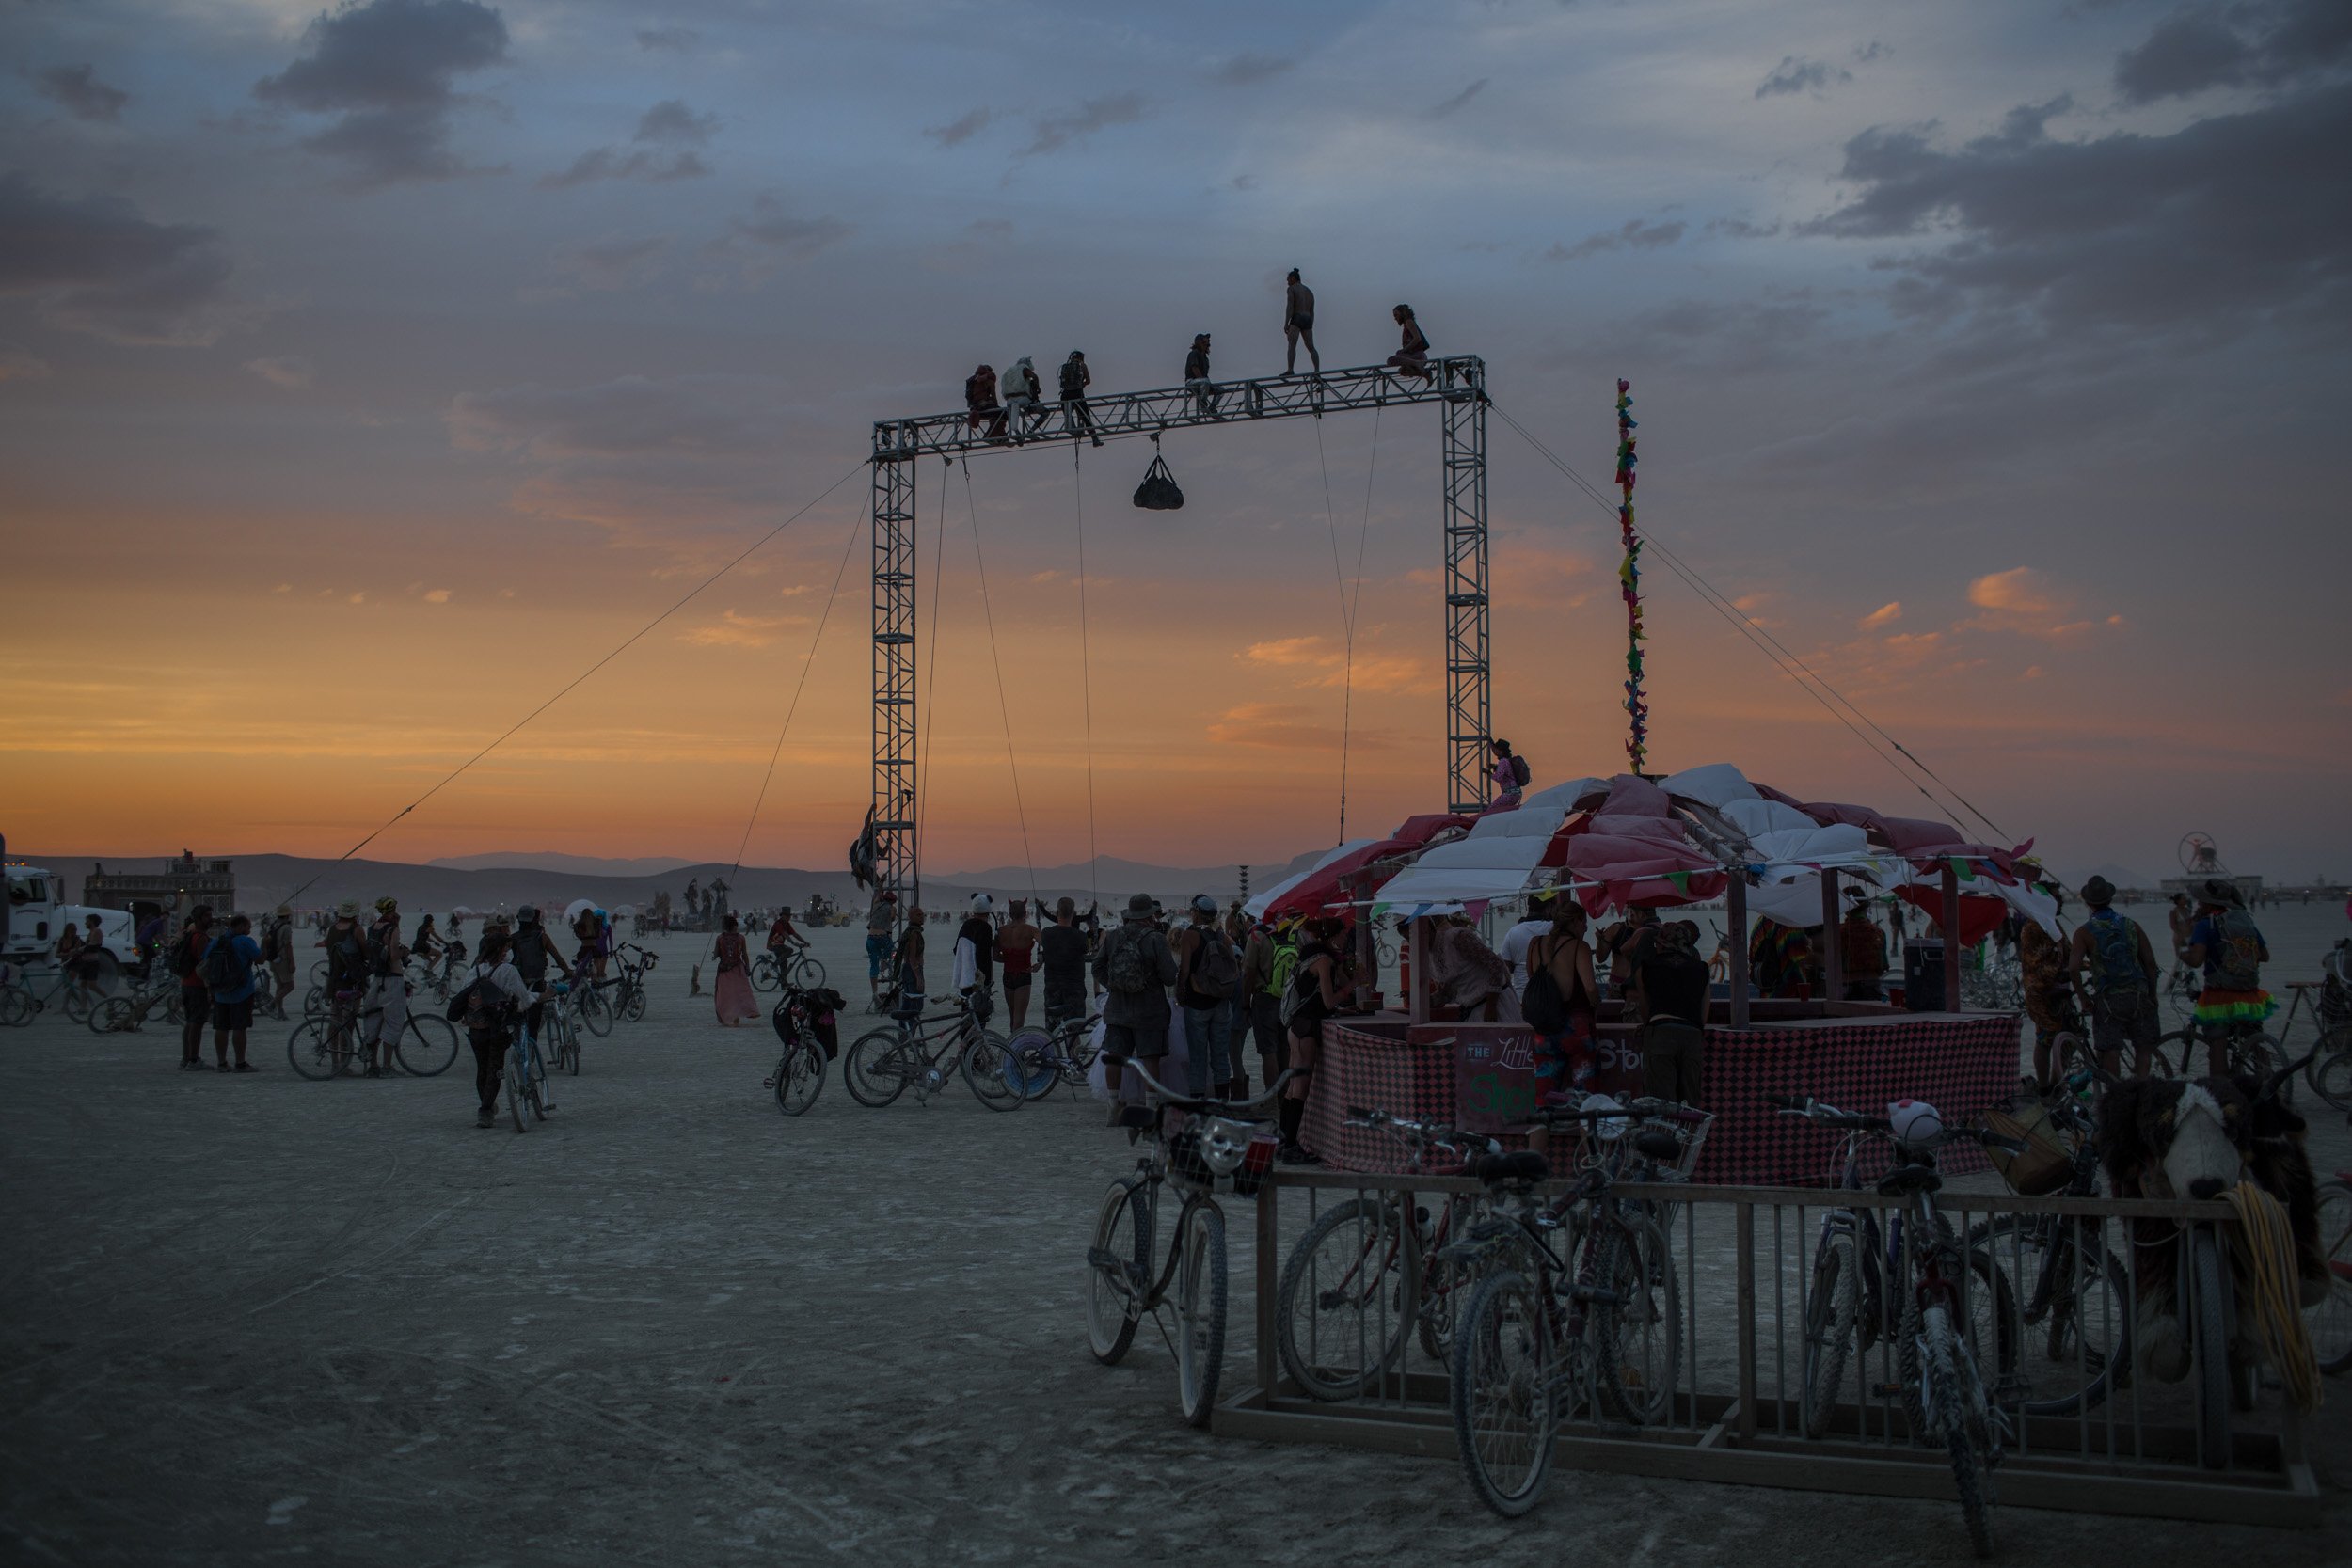 20160902_BurningMan16_7U6A8629